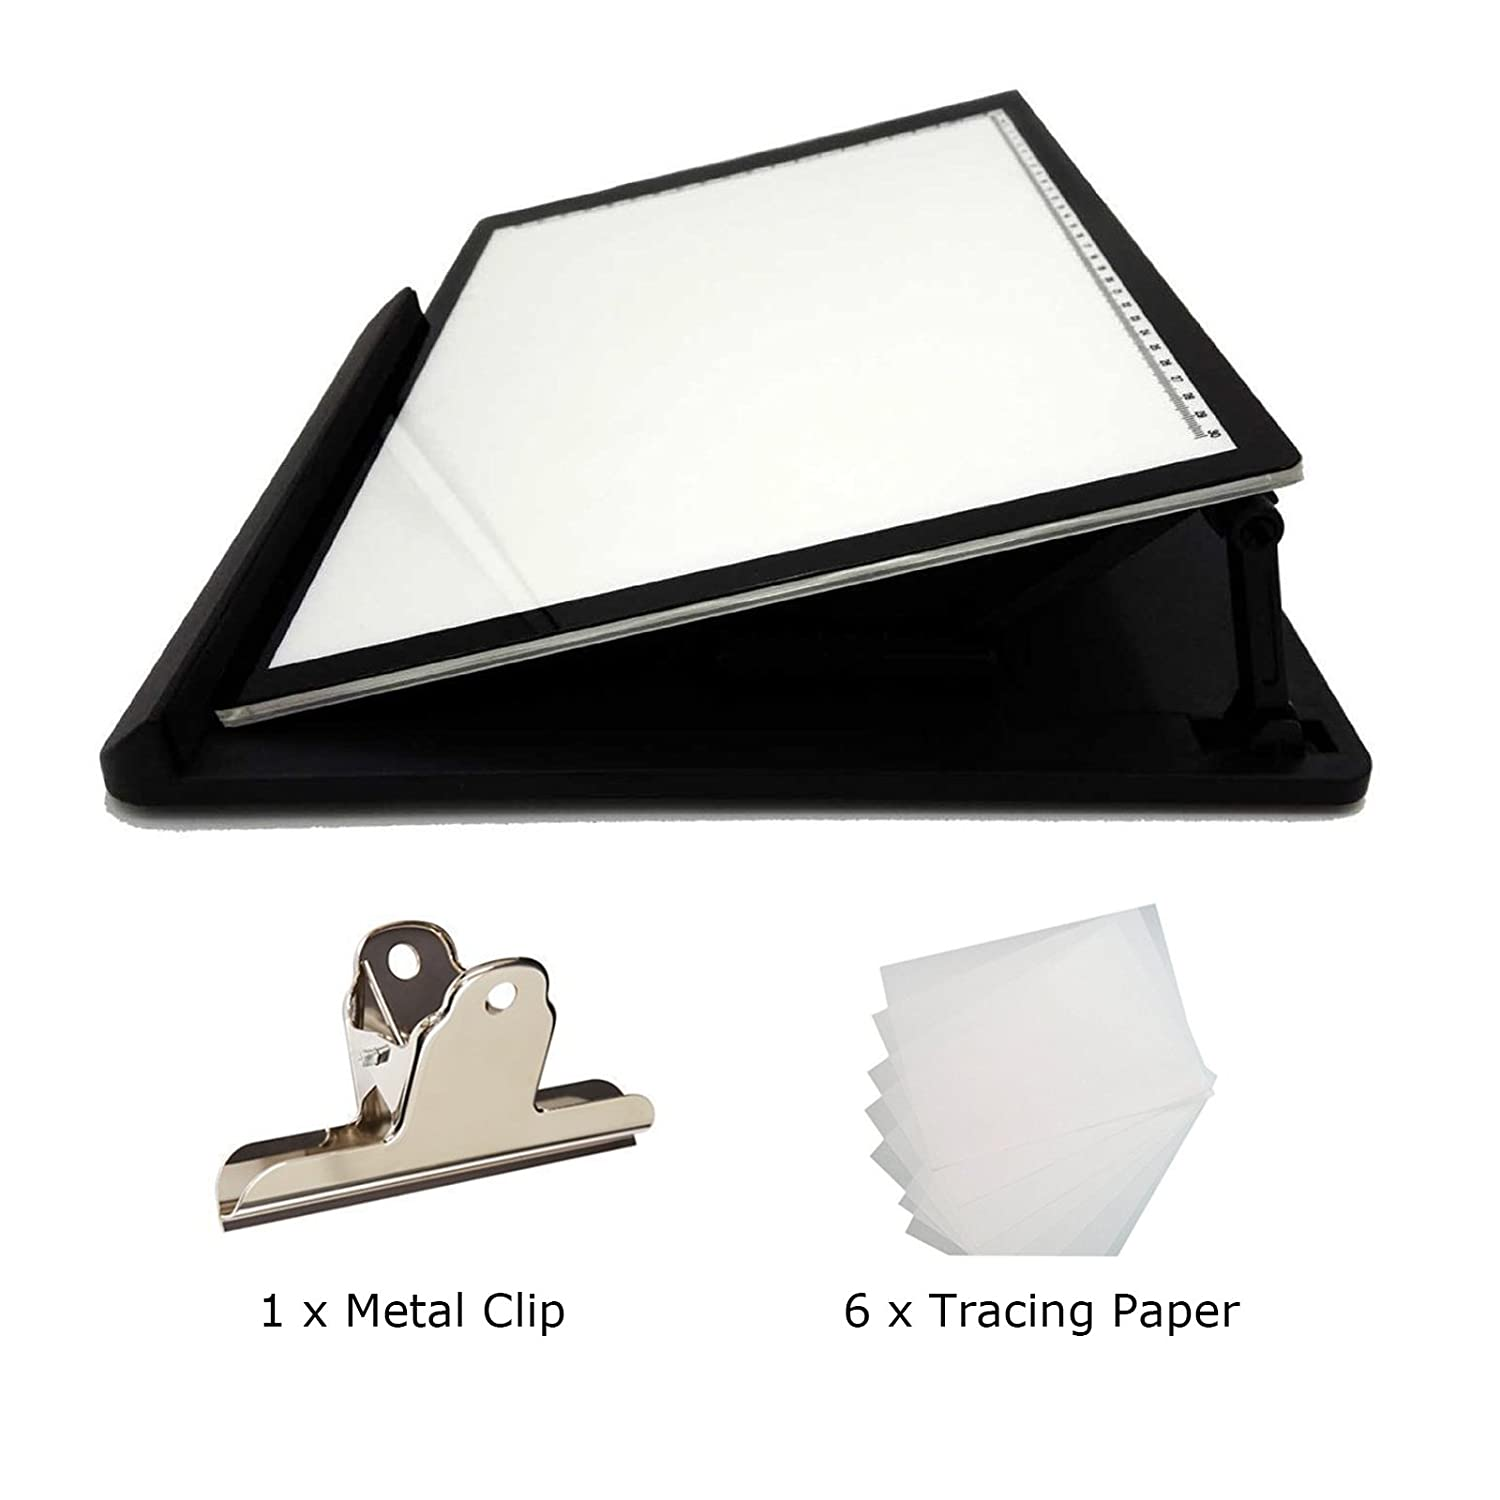 Huion Extra Thin light PAD 5mm LED Drawing Copy Tracing Stencil Board Table Tatoo Pad Translucent Light Box L4SH With Multifunction Holder COMINU042581